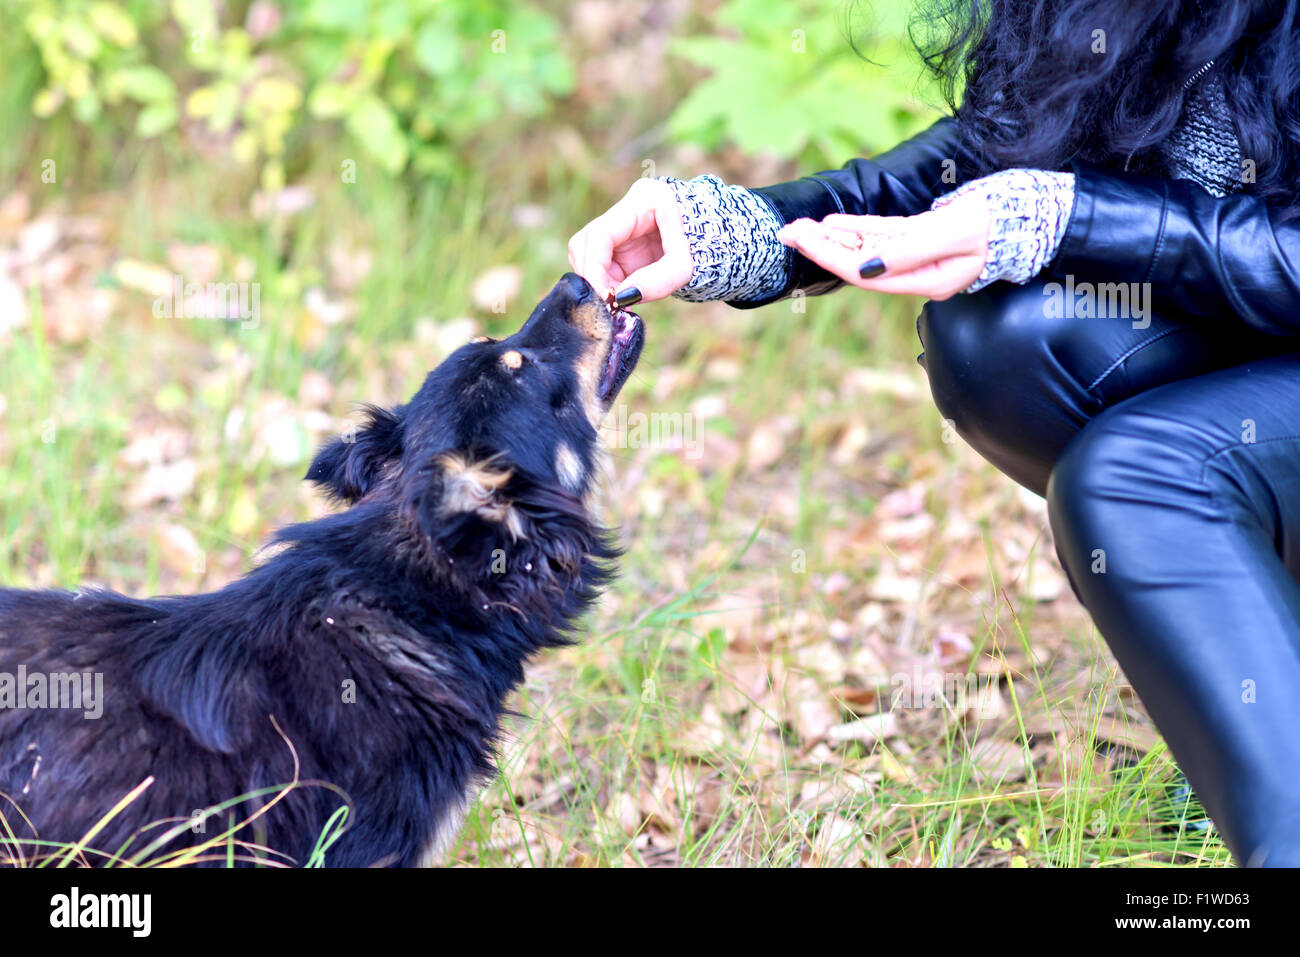 woman feeding dog in park - Stock Image